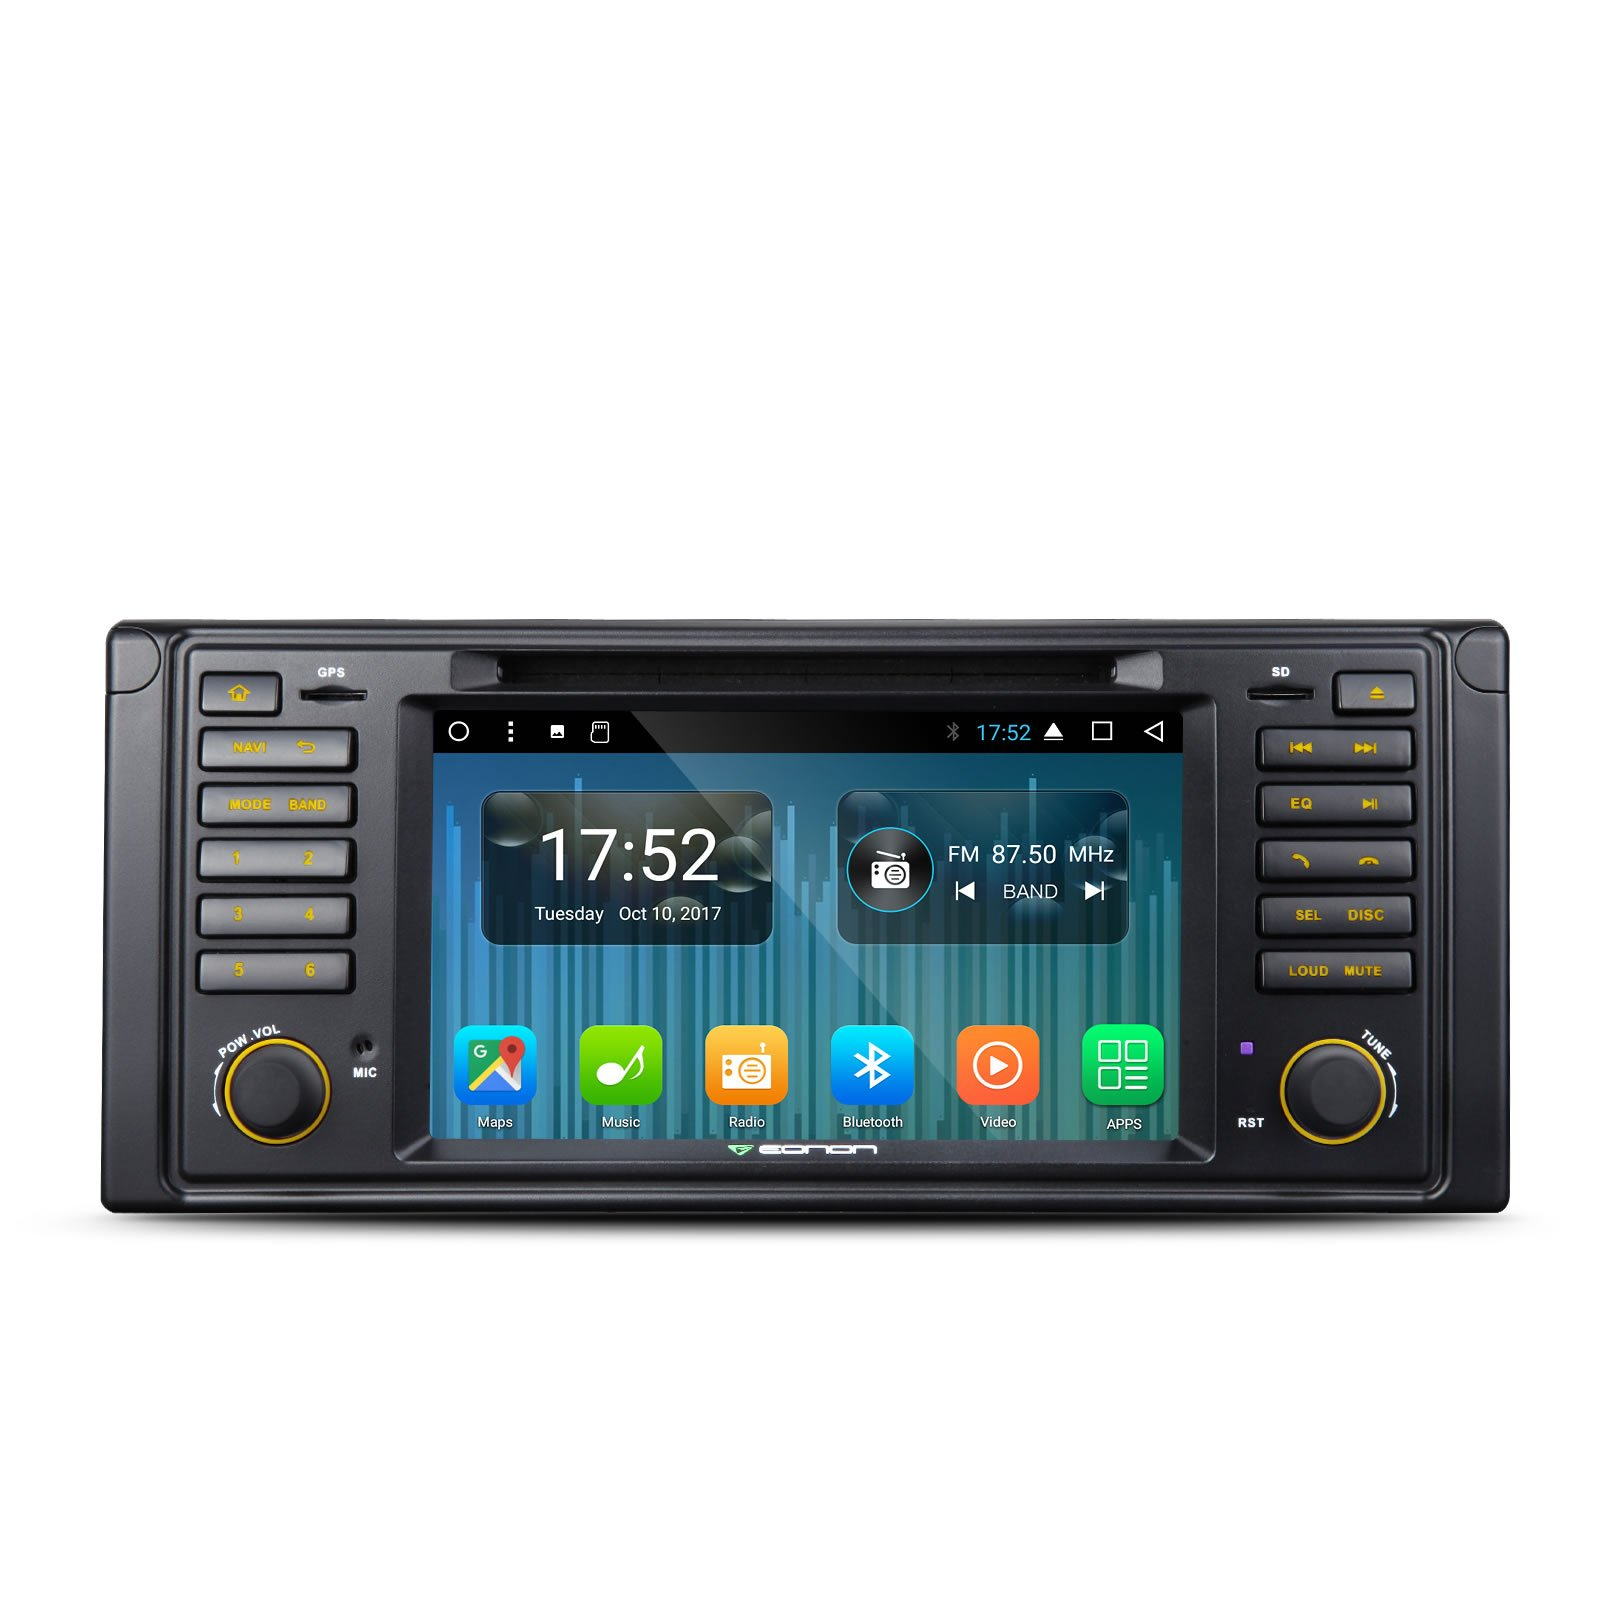 Eonon GA8201A Car Audio Stereo Radio for BMW 5 Series 1996-2003(E39) Car GPS Navigation System Android 7.1 Octa-Core 2GB RAM 7 '' Single Din Touch Screen with Bluetooth Head Unit